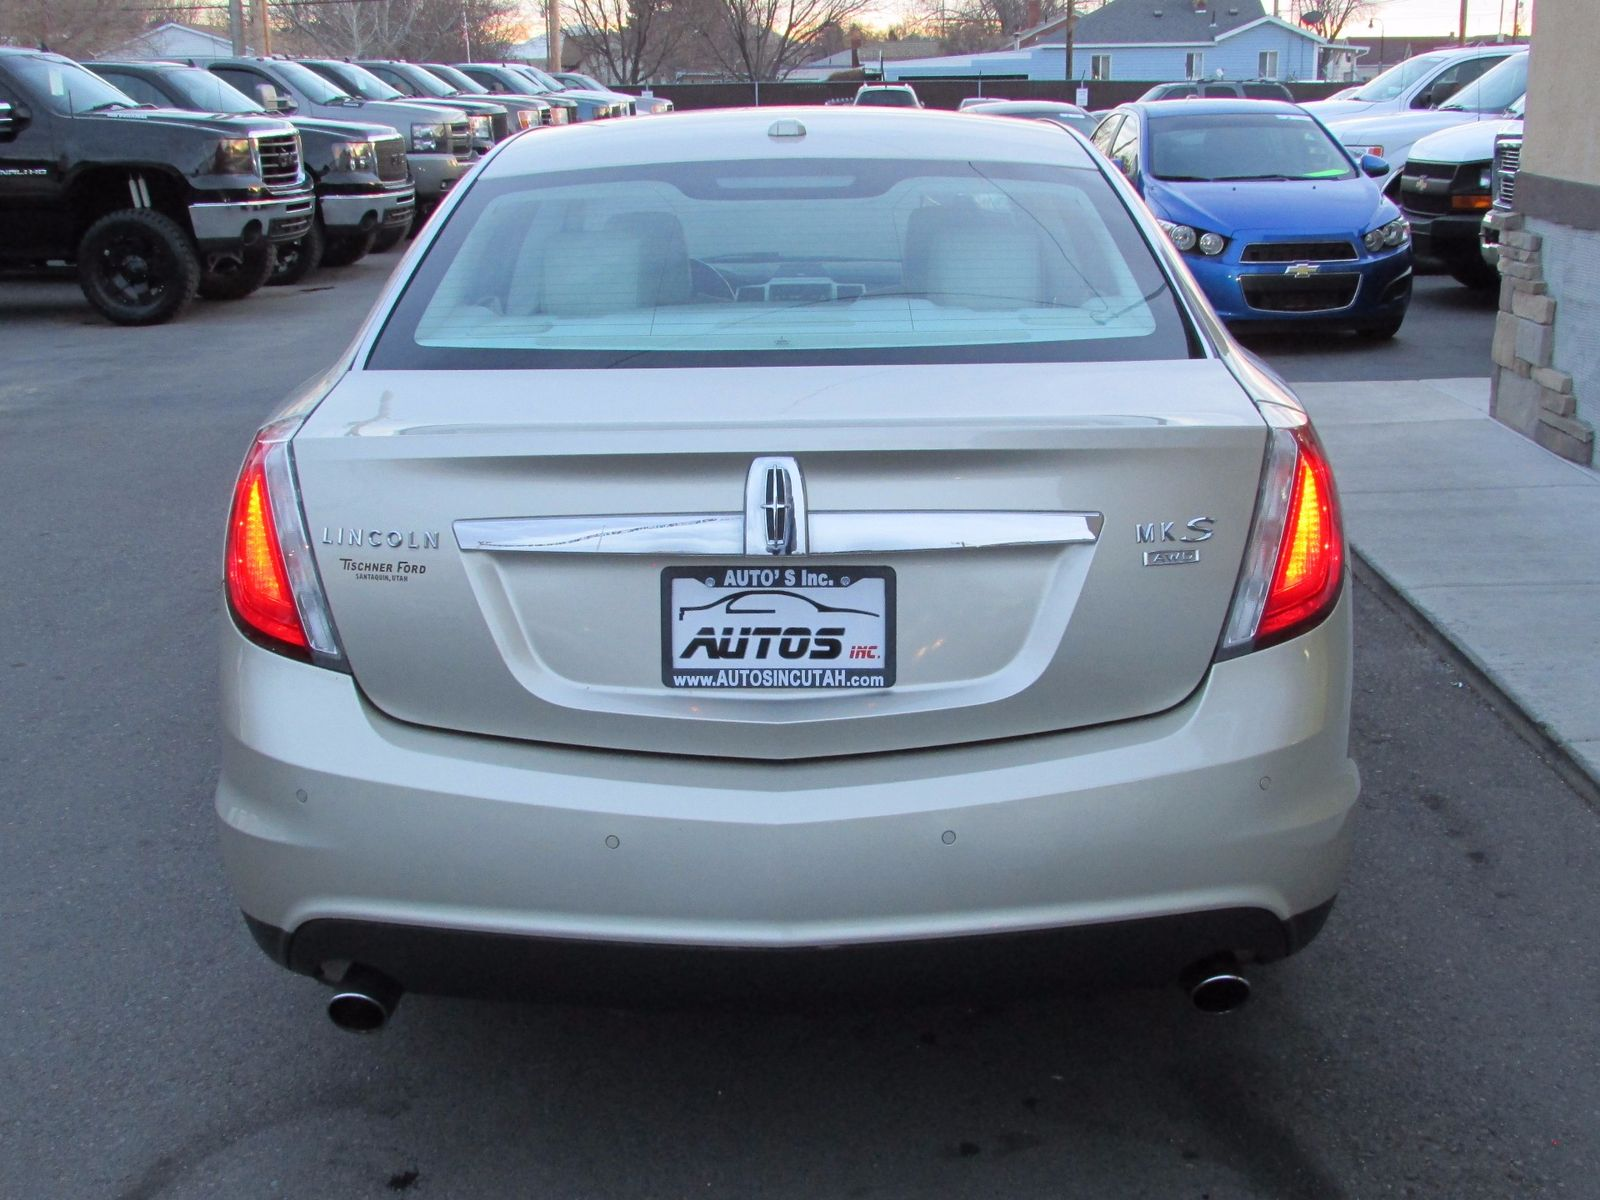 idaho mkz two take cars mks fifty review the about lincoln truth